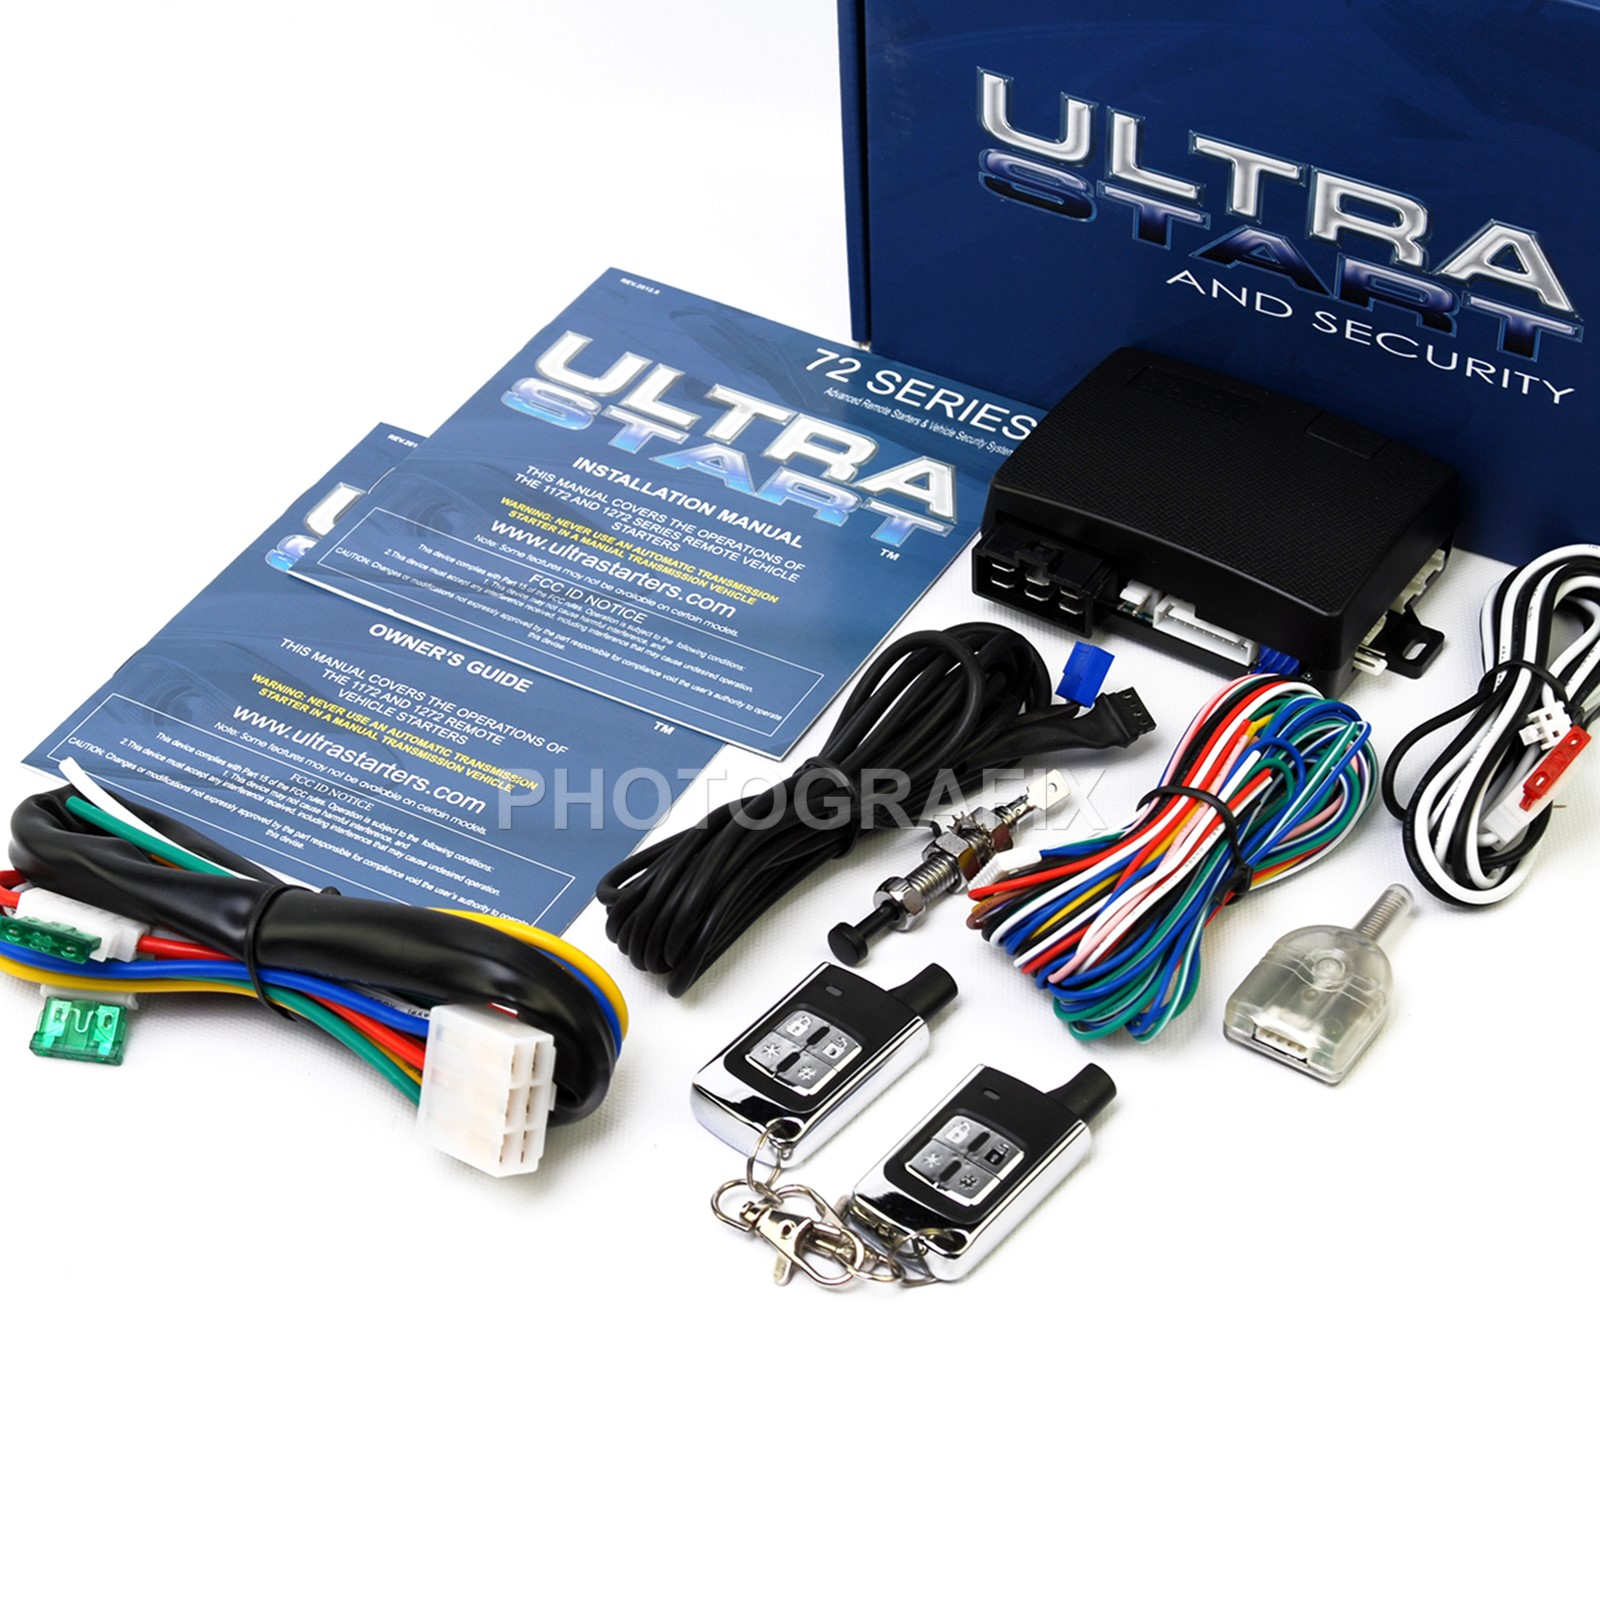 hight resolution of ultra start 1272 xr pro keyless auto remote car start starter diagrams start wiring remote oltrastart